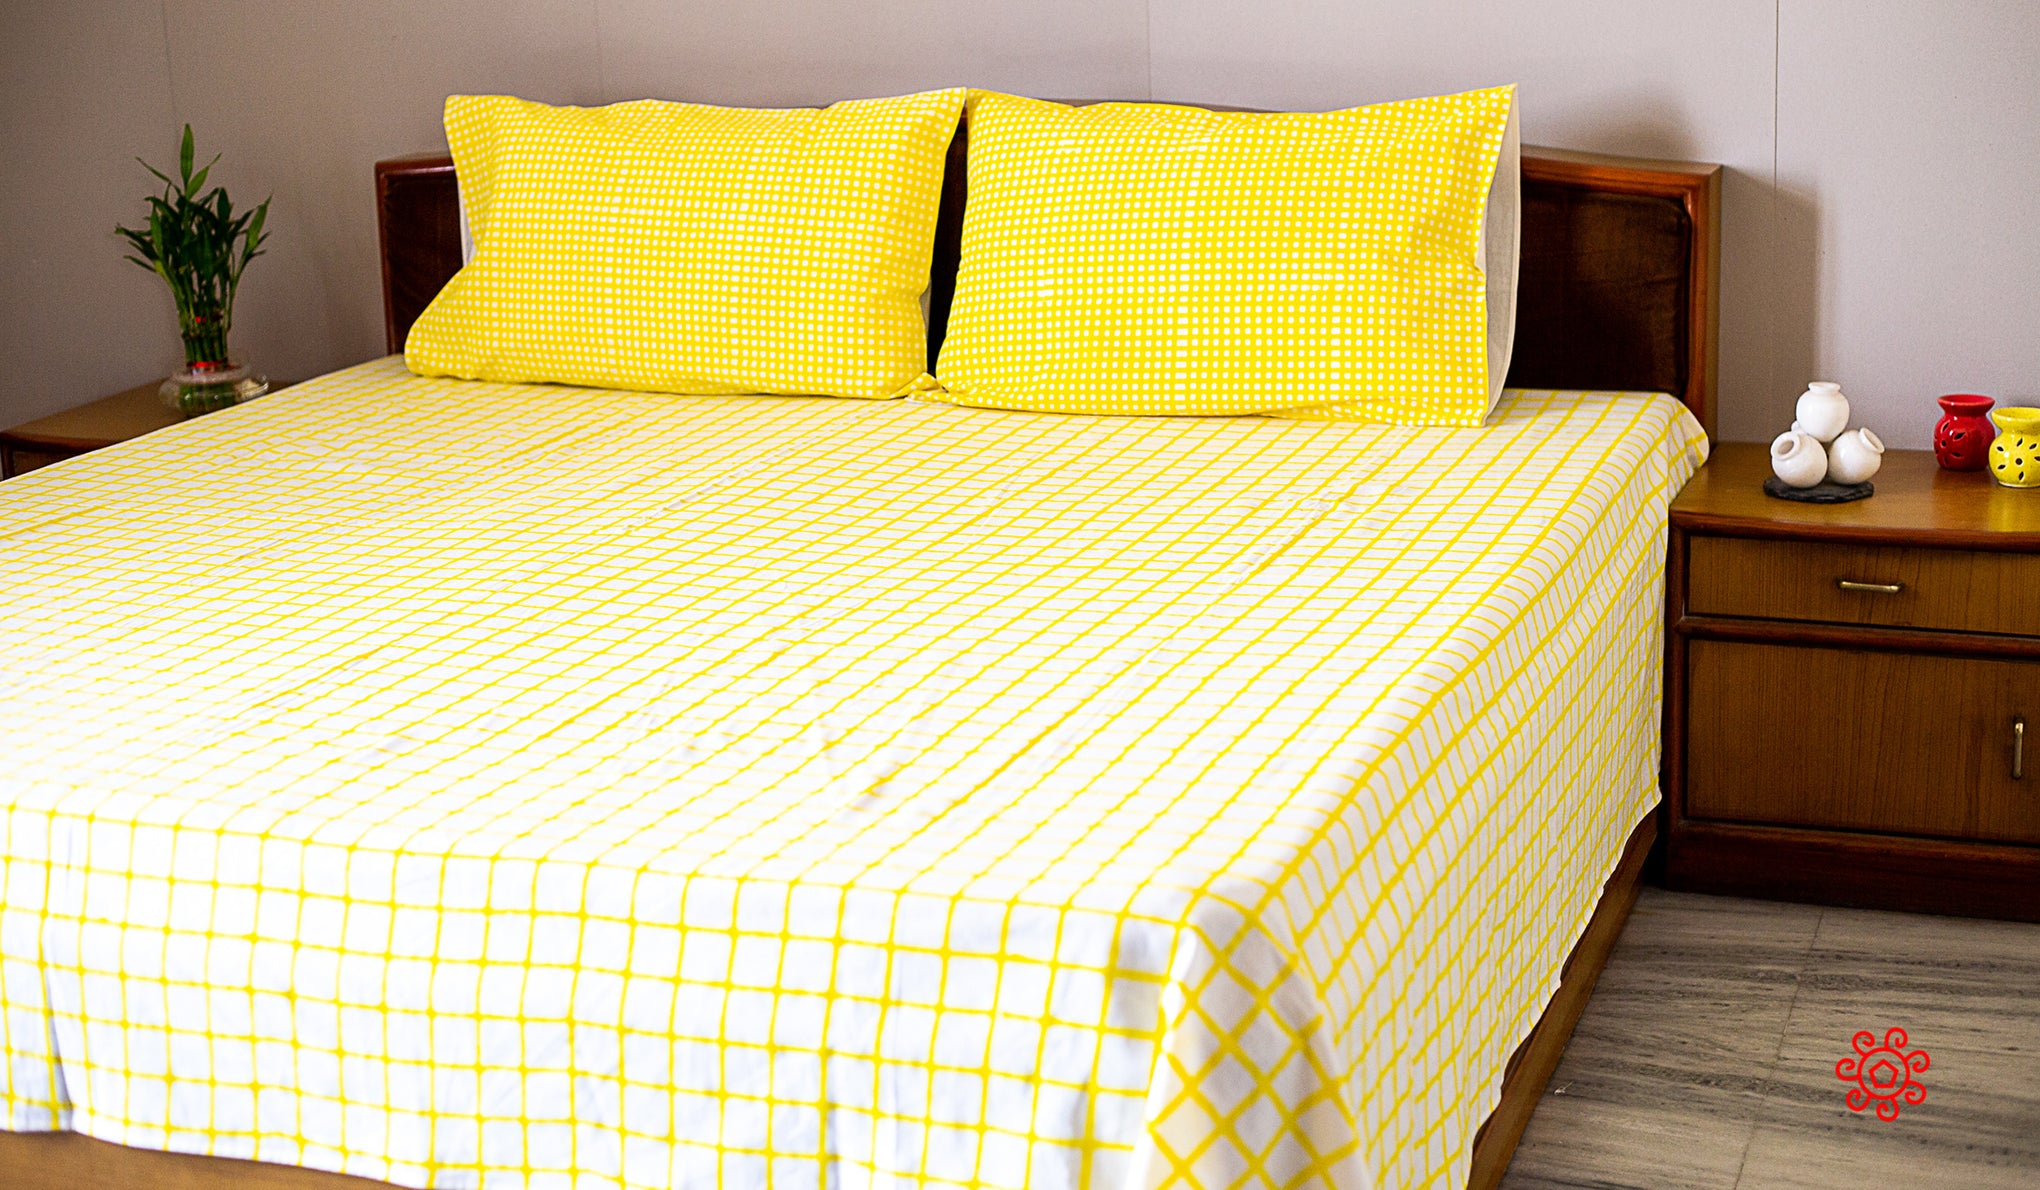 Roysha 2021 Bed Sheet/Flat Sheet/ Bed Linen Queen Size 100% Handmade, Hand Block Printed, Pure Cotton, Check Design, Room Decor Bright Yellow